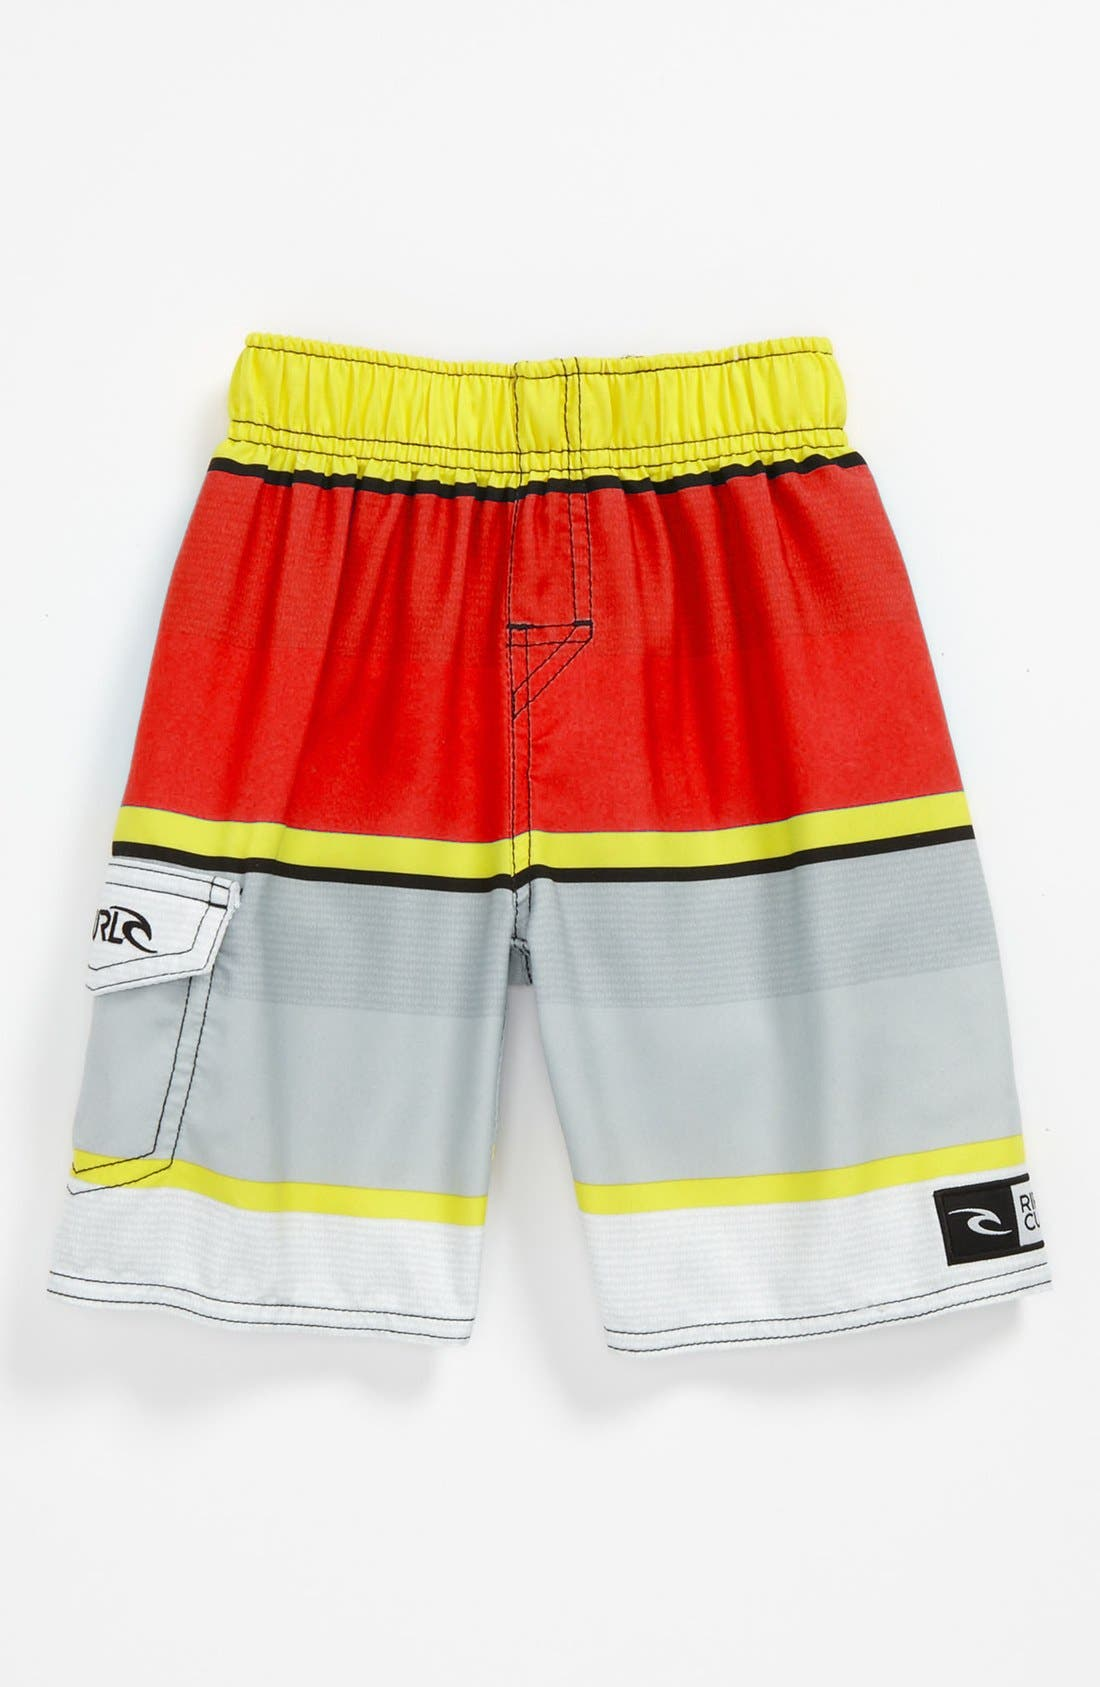 Alternate Image 1 Selected - Rip Curl 'Amplify' Volley Shorts (Toddler)